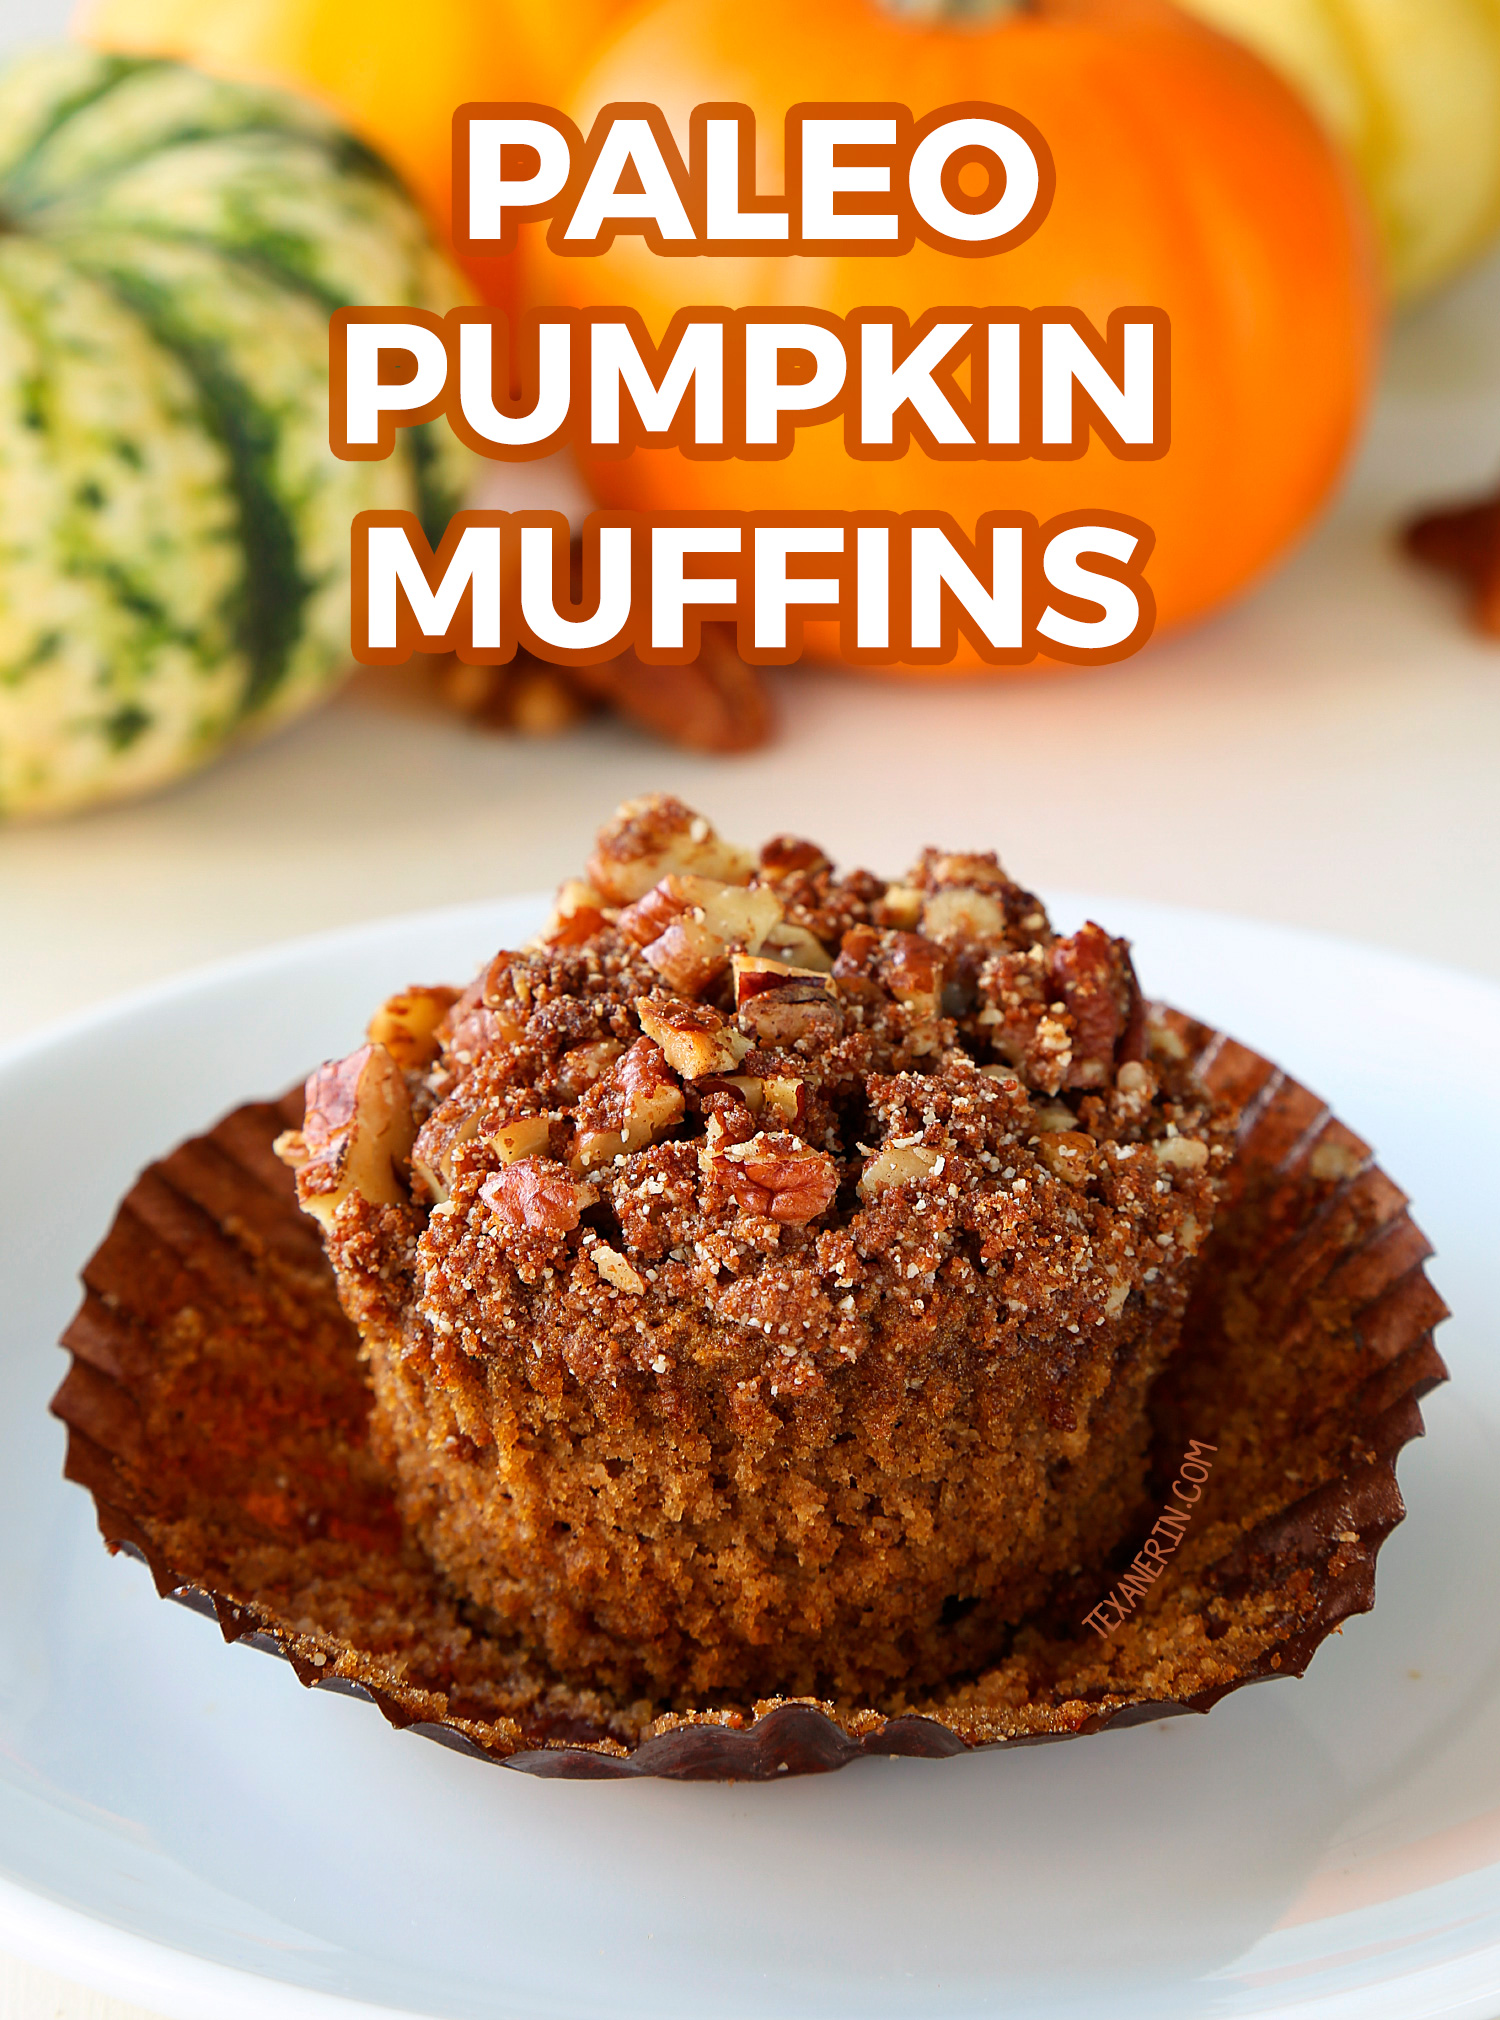 These paleo pumpkin muffins are topped with pecan streusel and have a great texture! With a video.